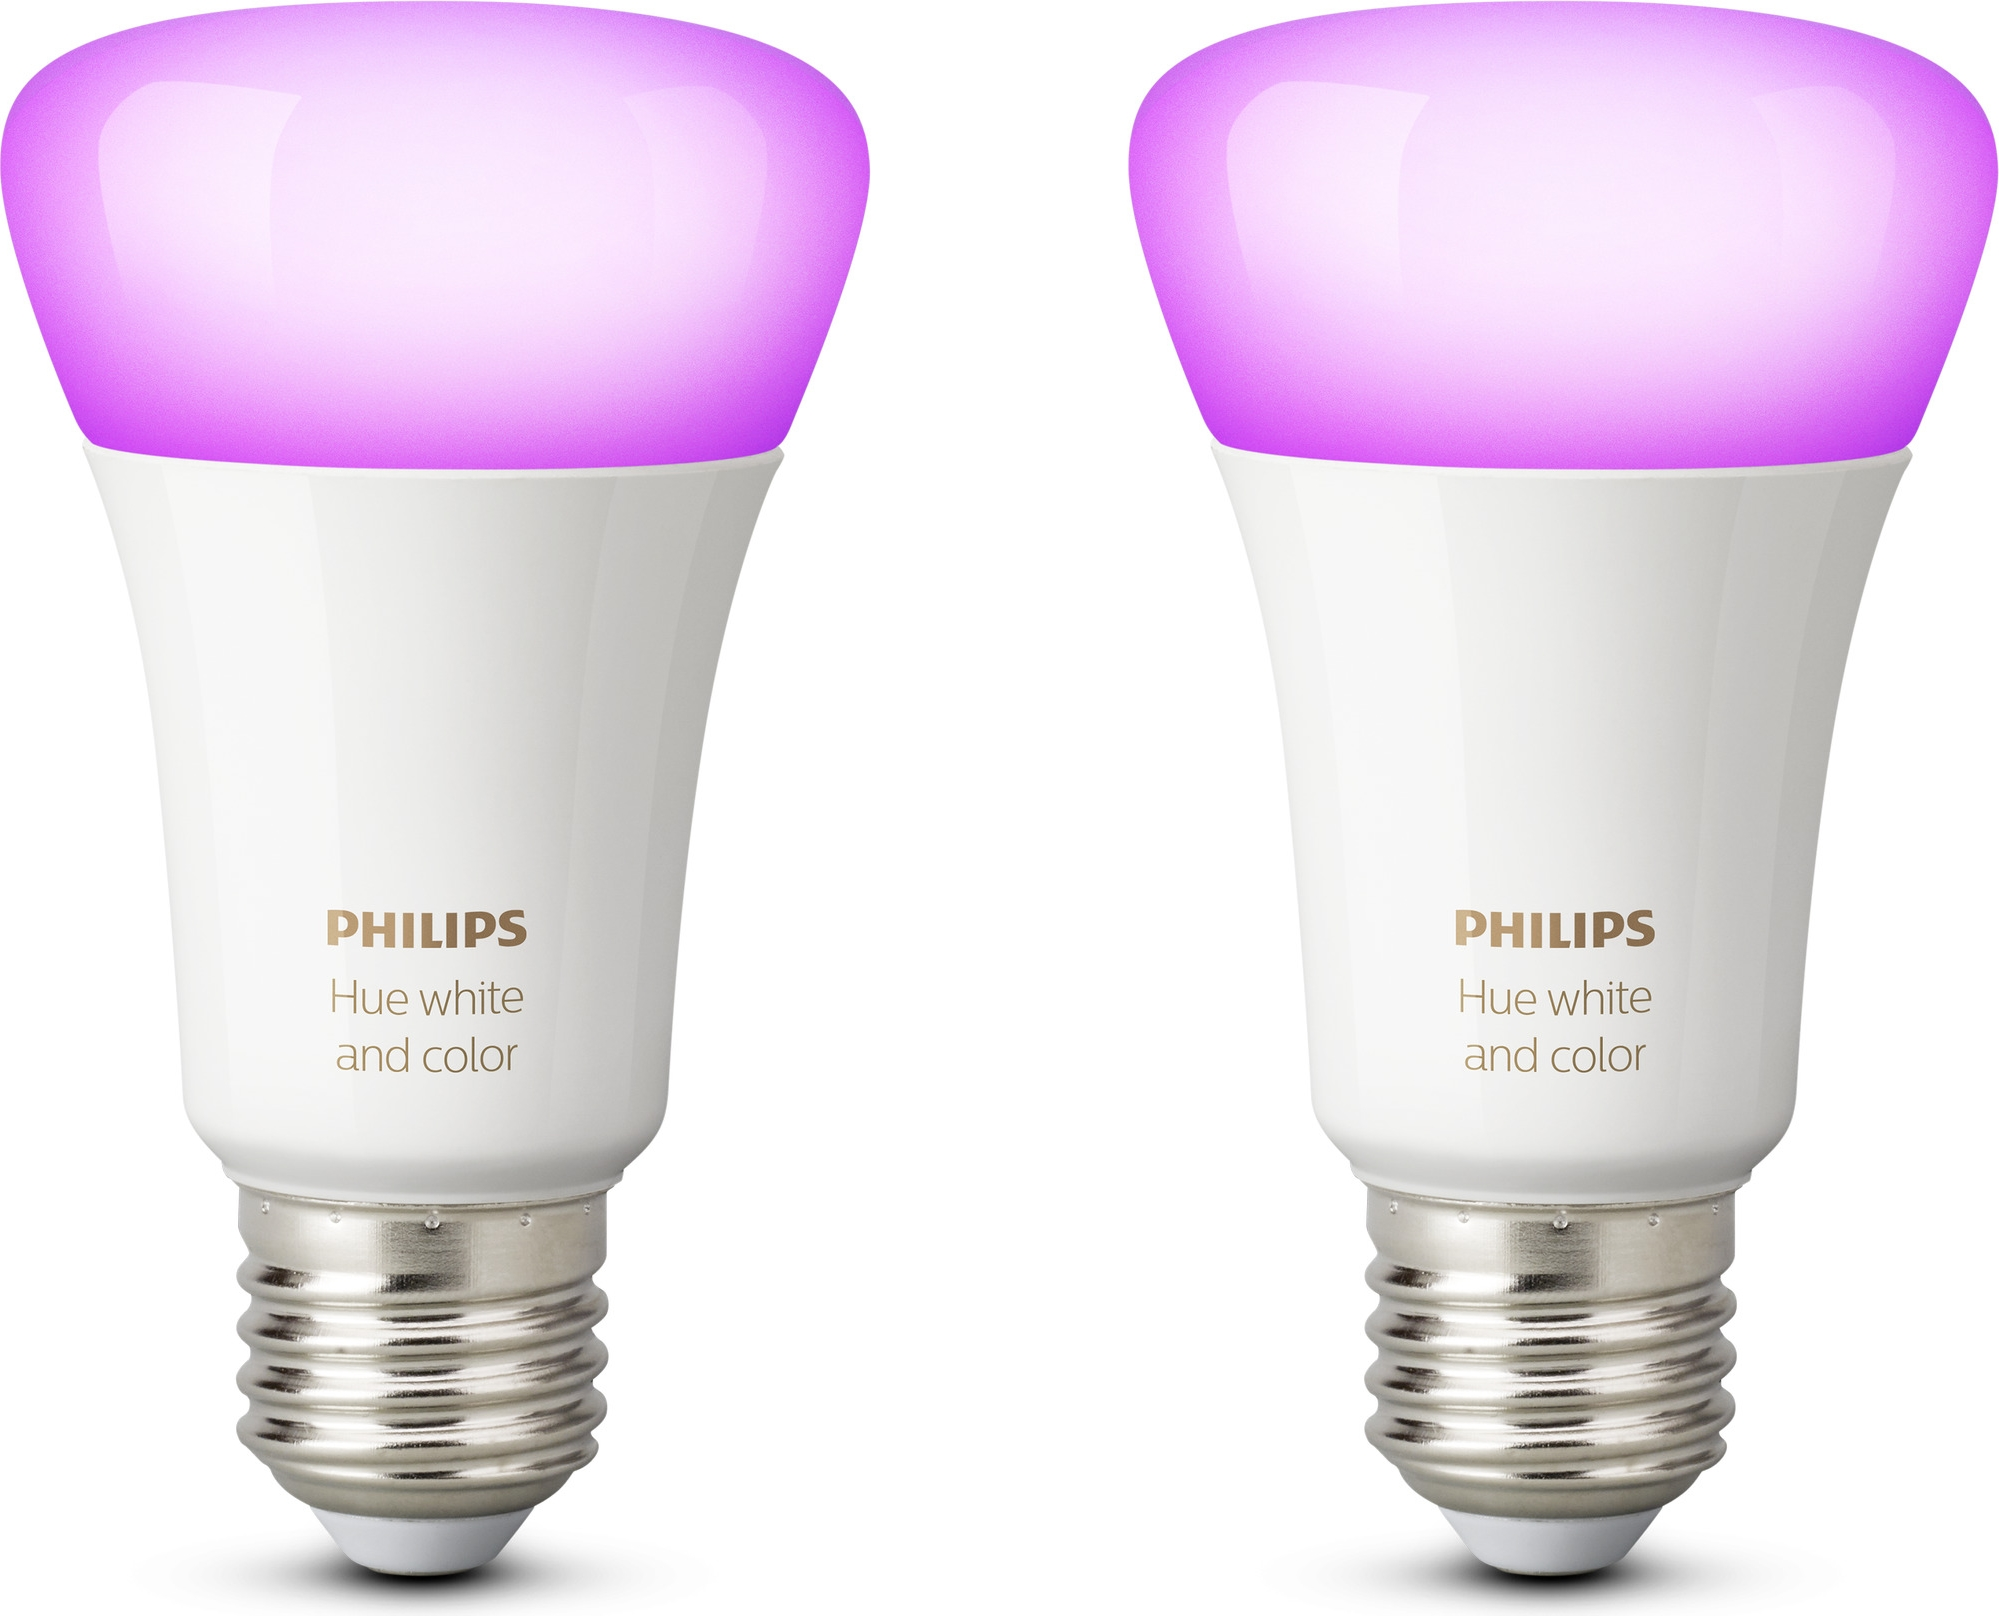 LED-lamppusetti Philips Hue white and color ambiance E27 2 kpl rivissä